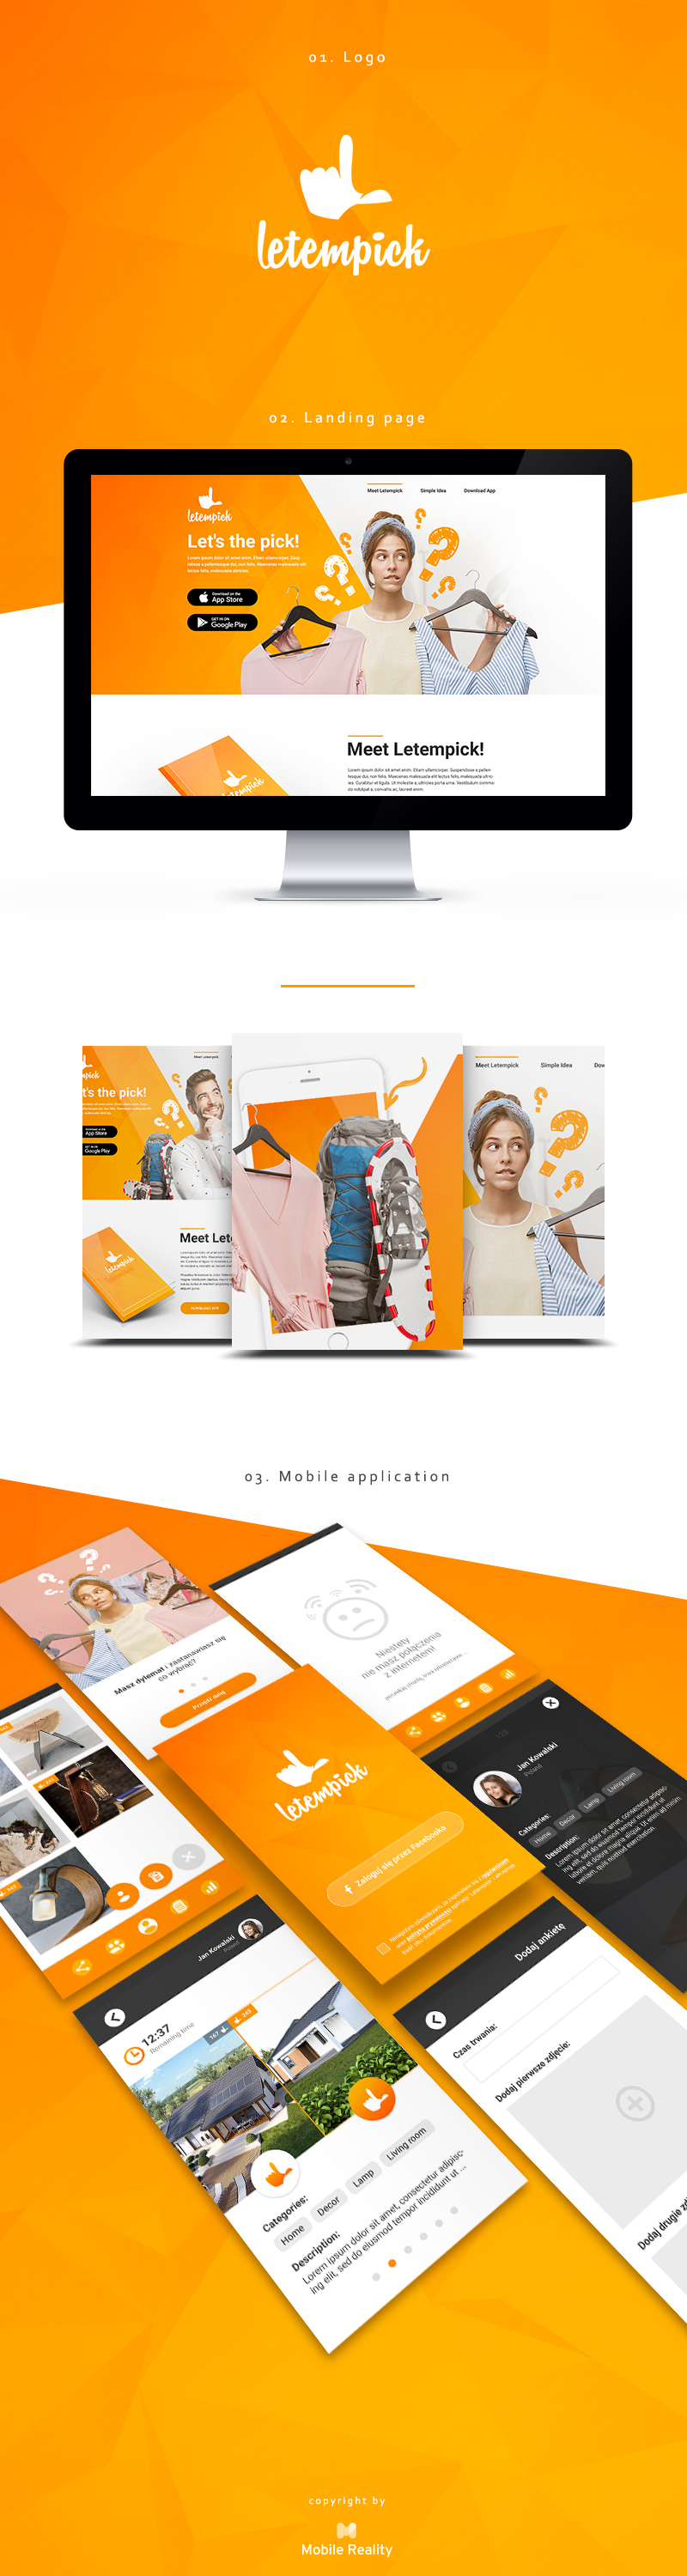 ui ux landingpage Web Design  Website design